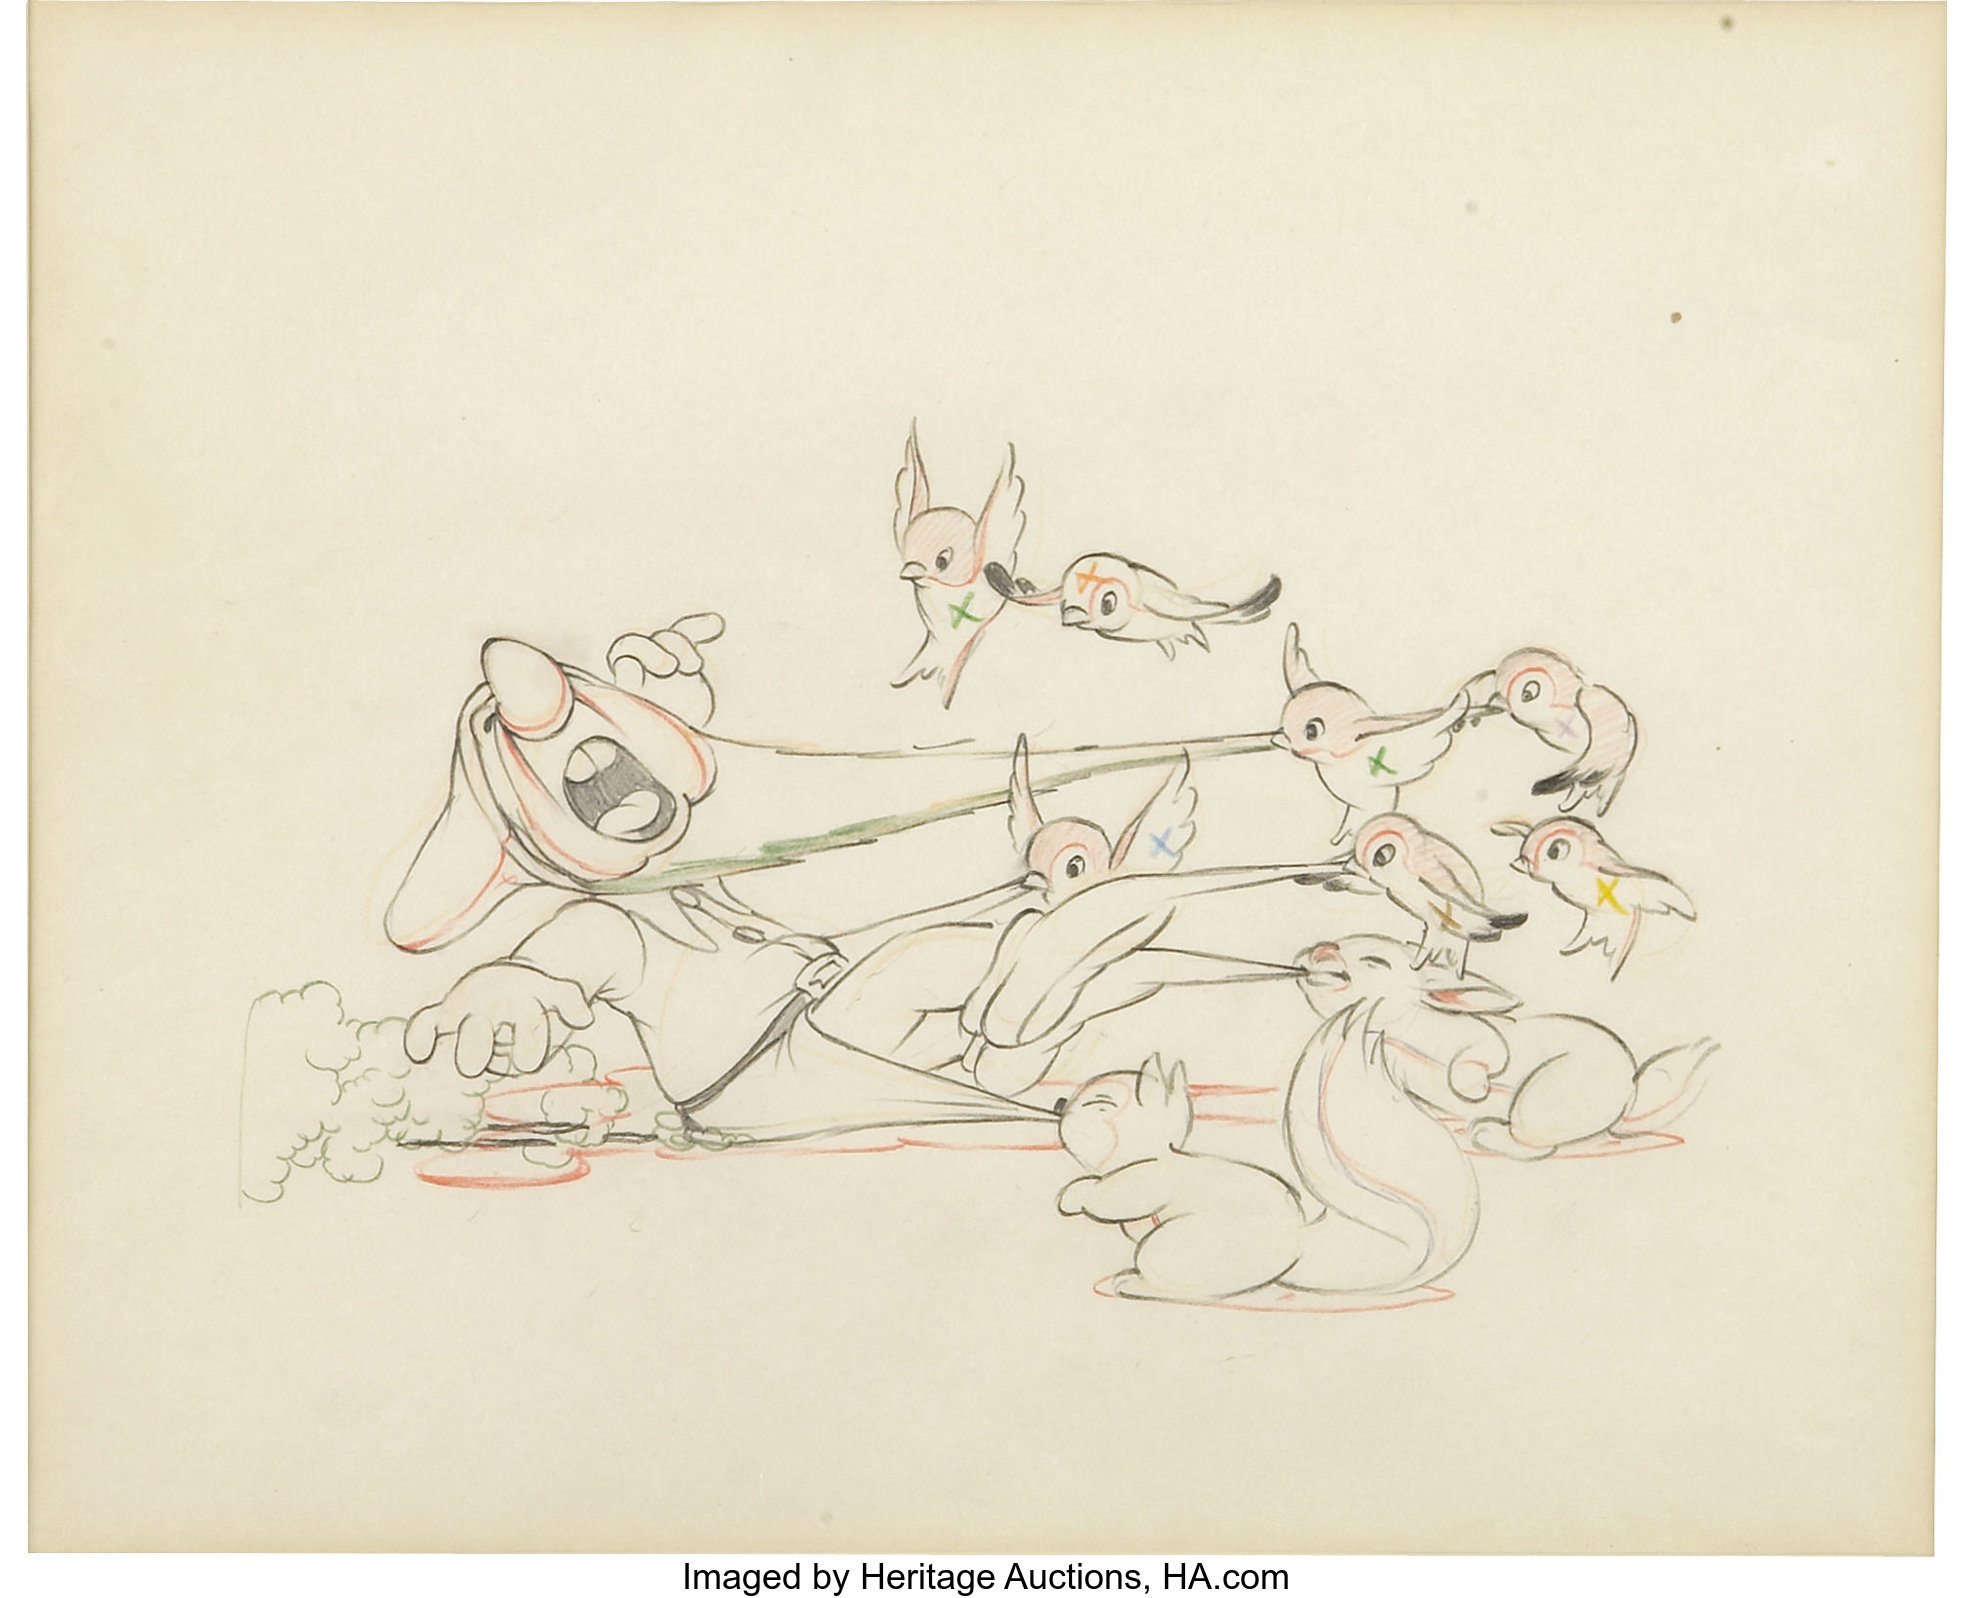 Snow white and the seven dwarfs grumpy pencil animation drawing